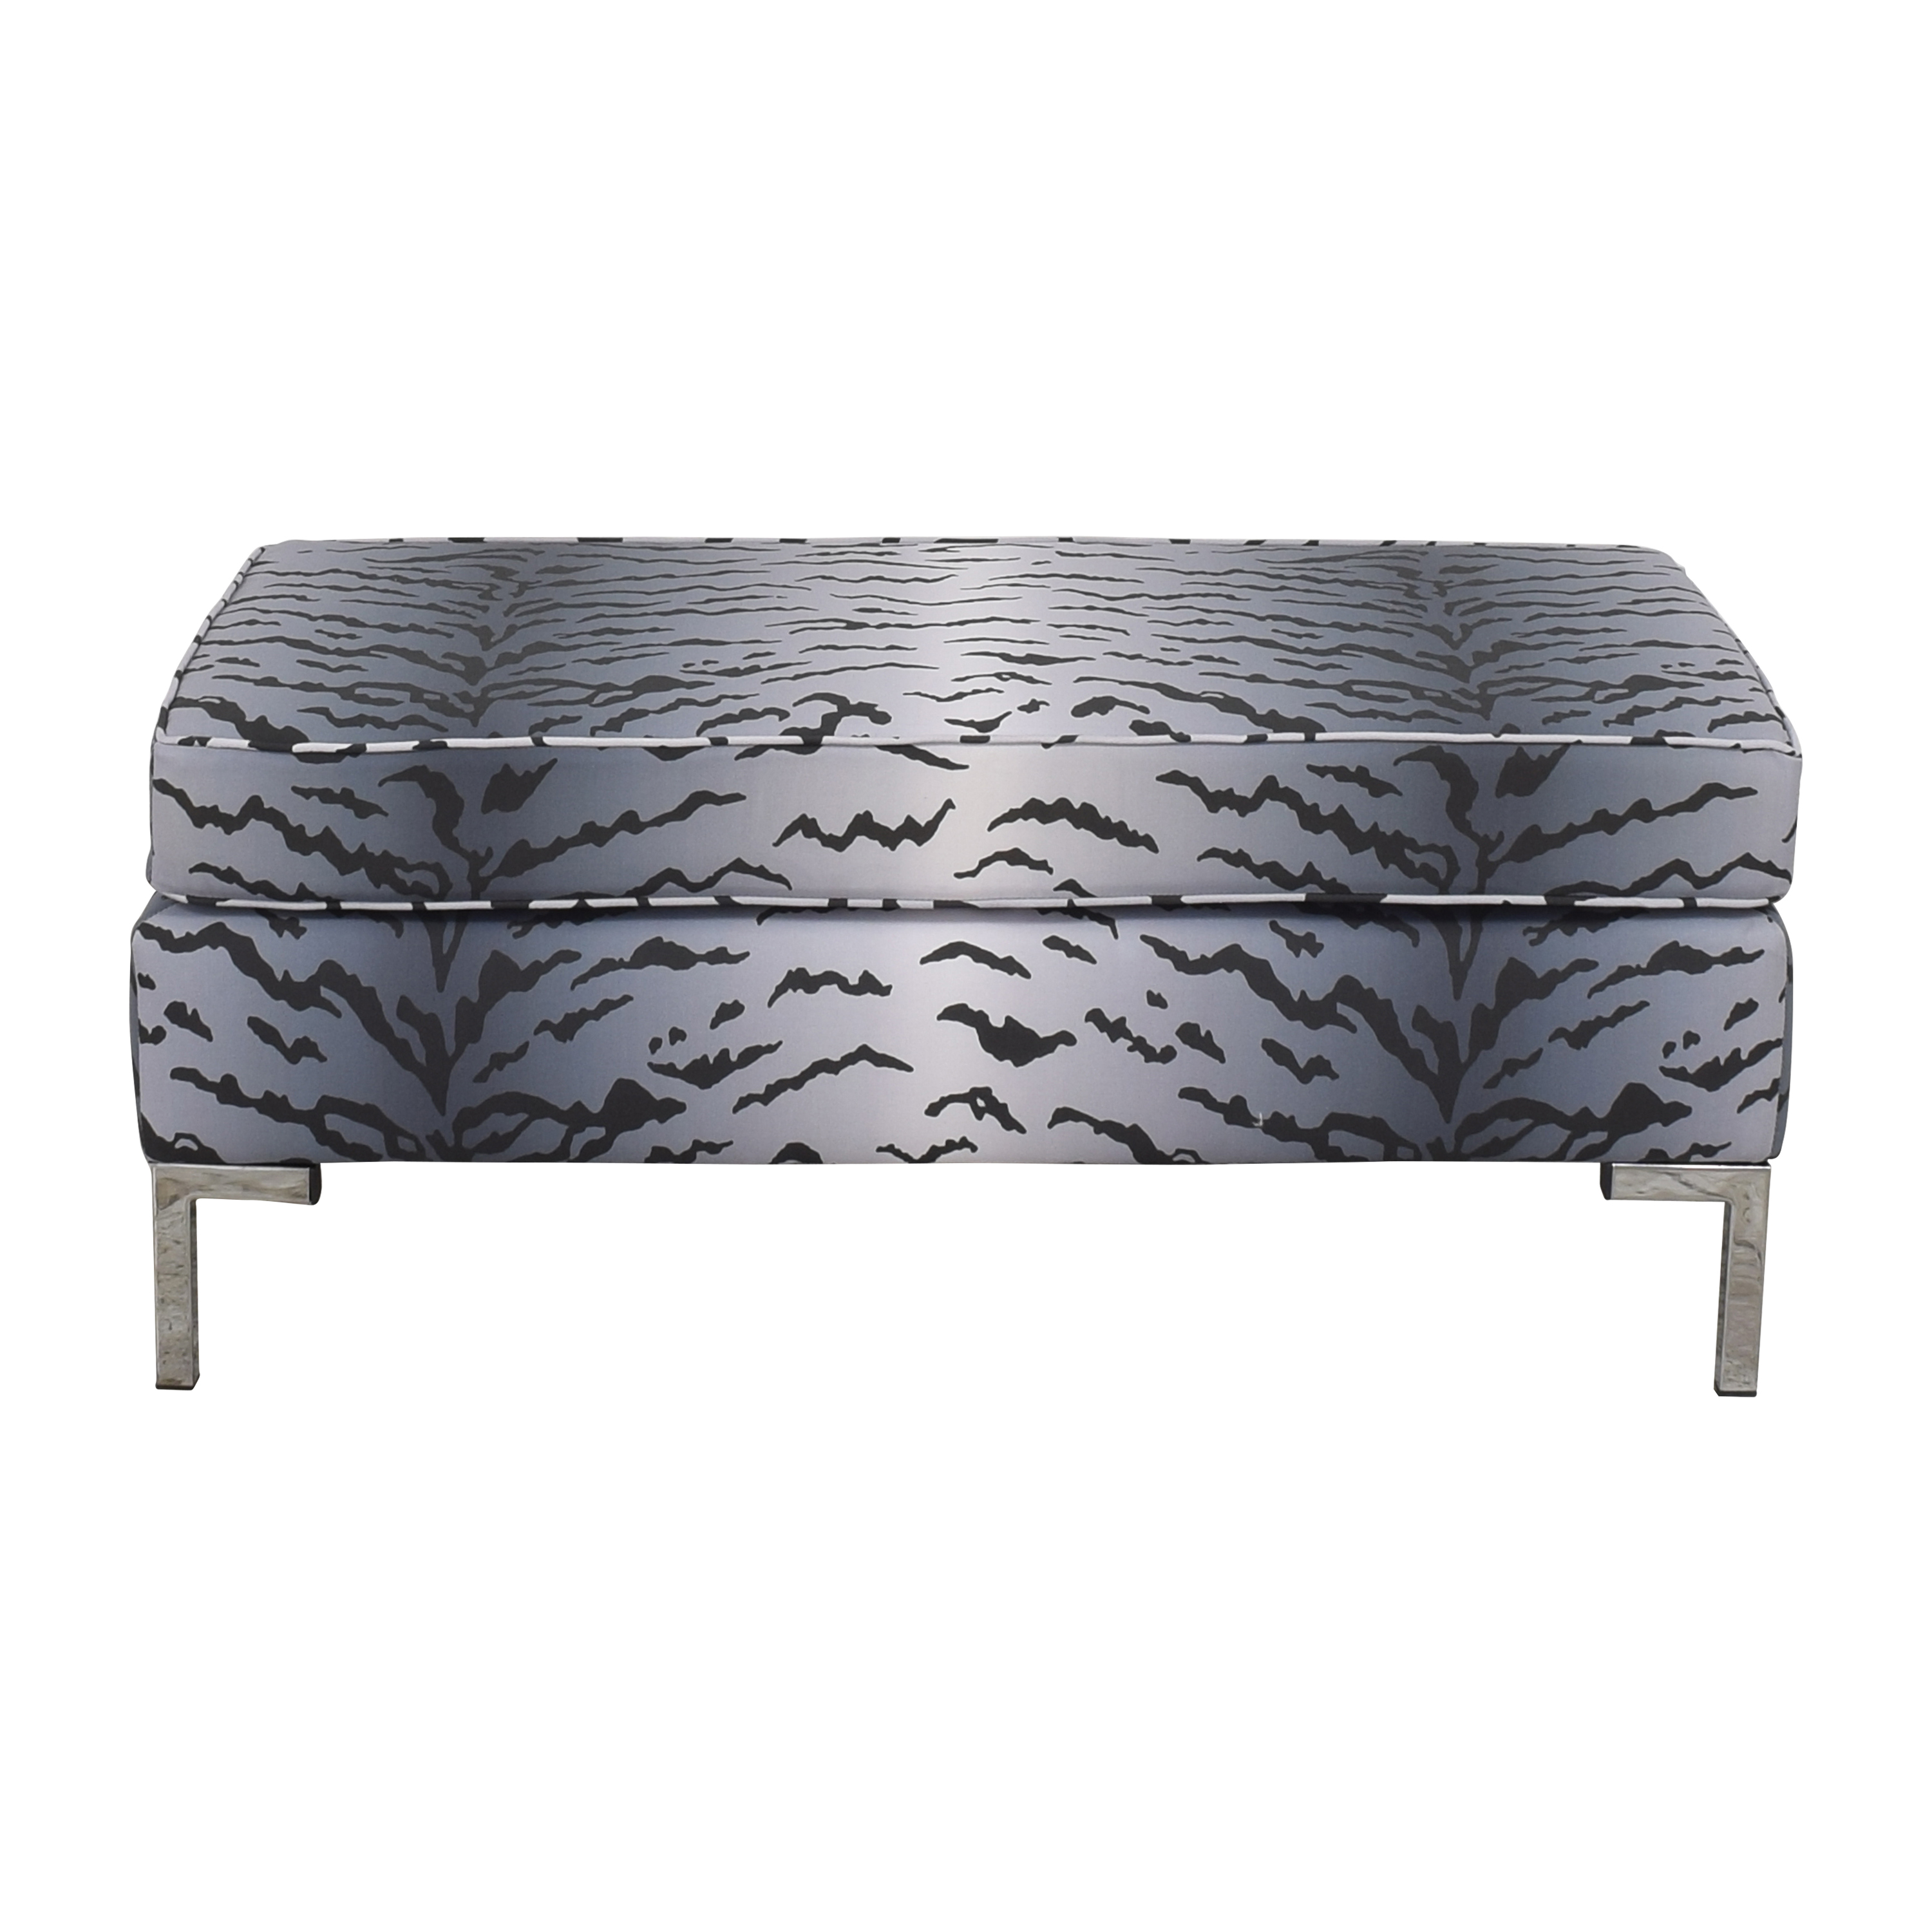 The Inside Slate Tiger Modern Bench / Chairs